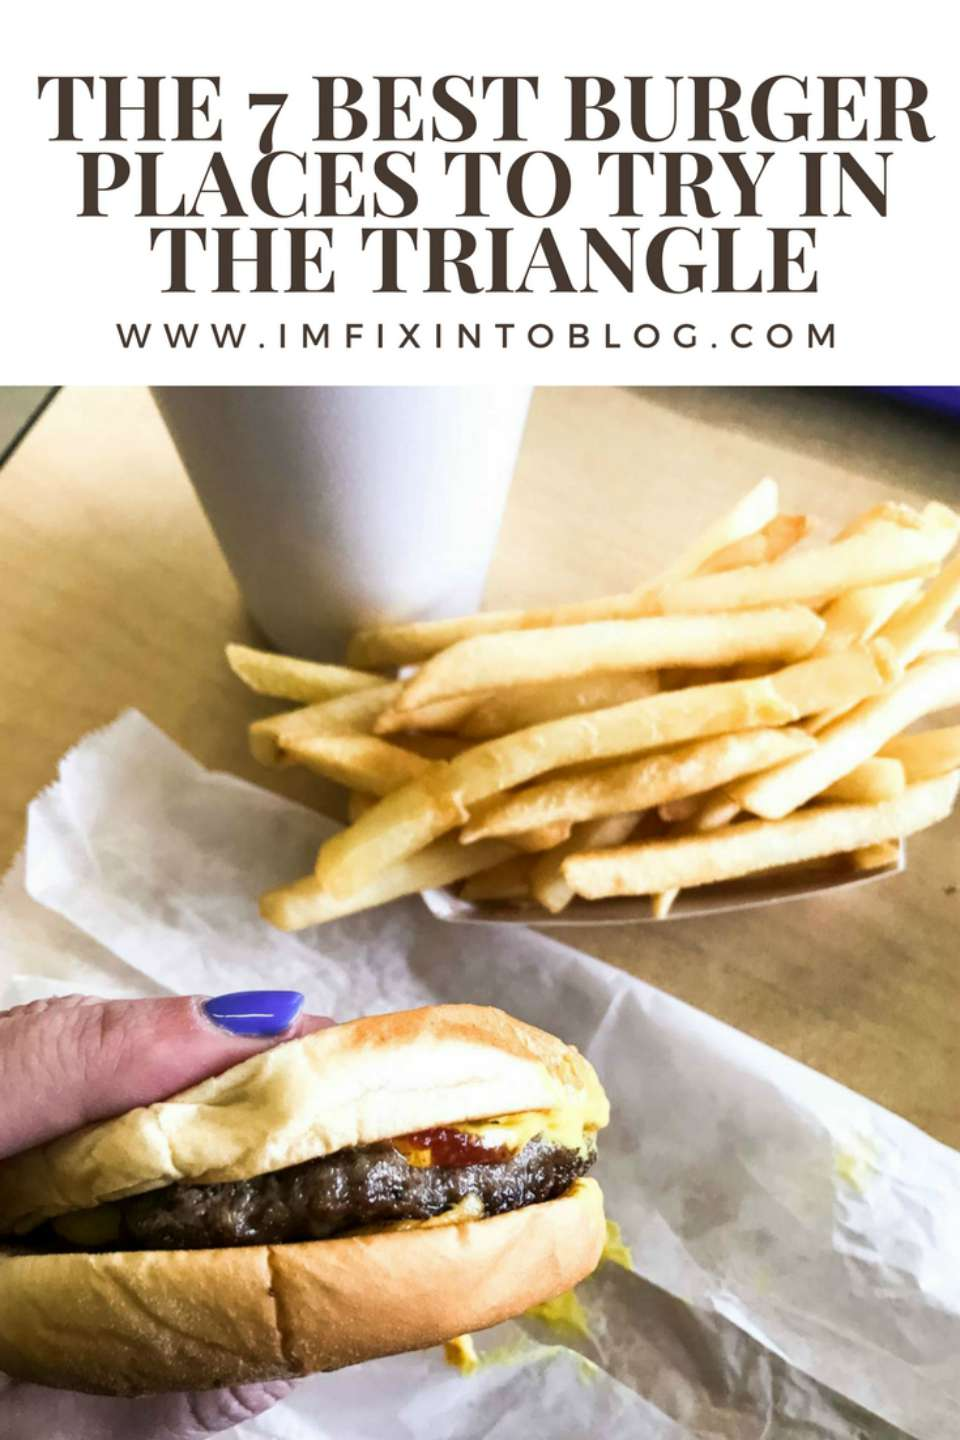 The 7 Best Burger Places to Try in Triangle - I'm Fixin' To - @mbg0112